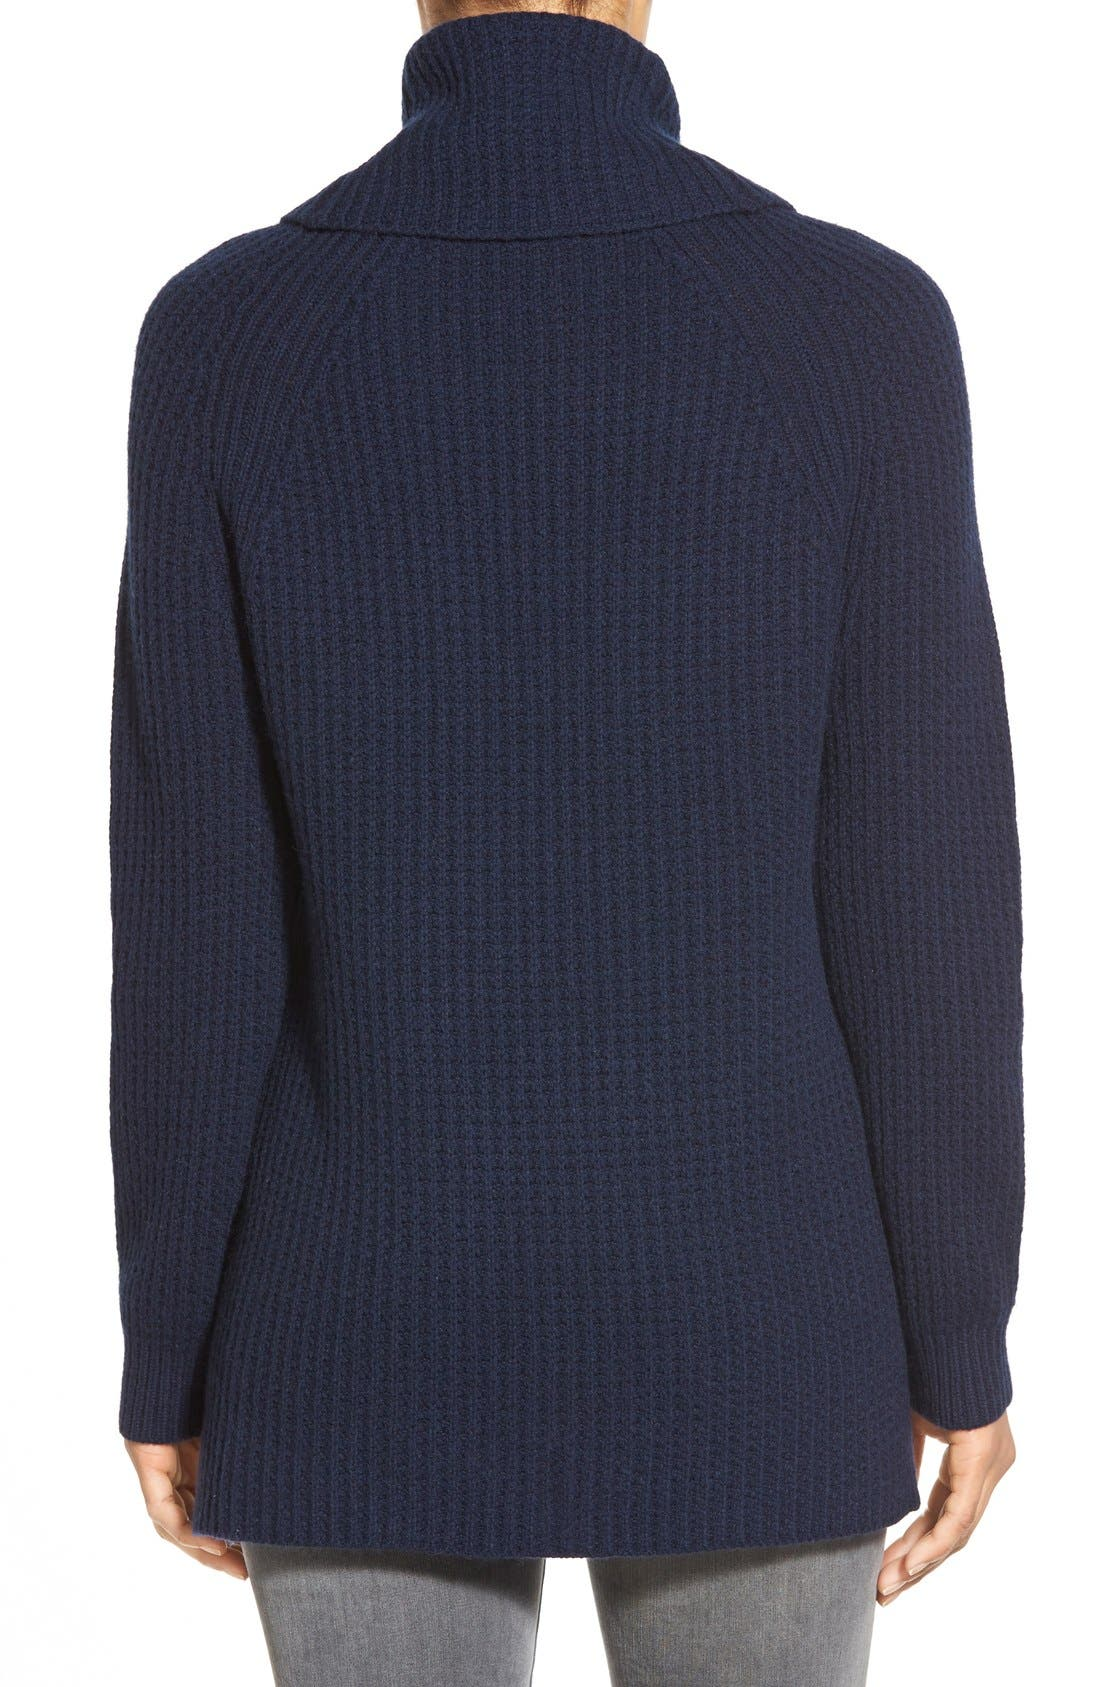 Alternate Image 2  - Nordstrom Collection Wool & Cashmere Turtleneck Sweater